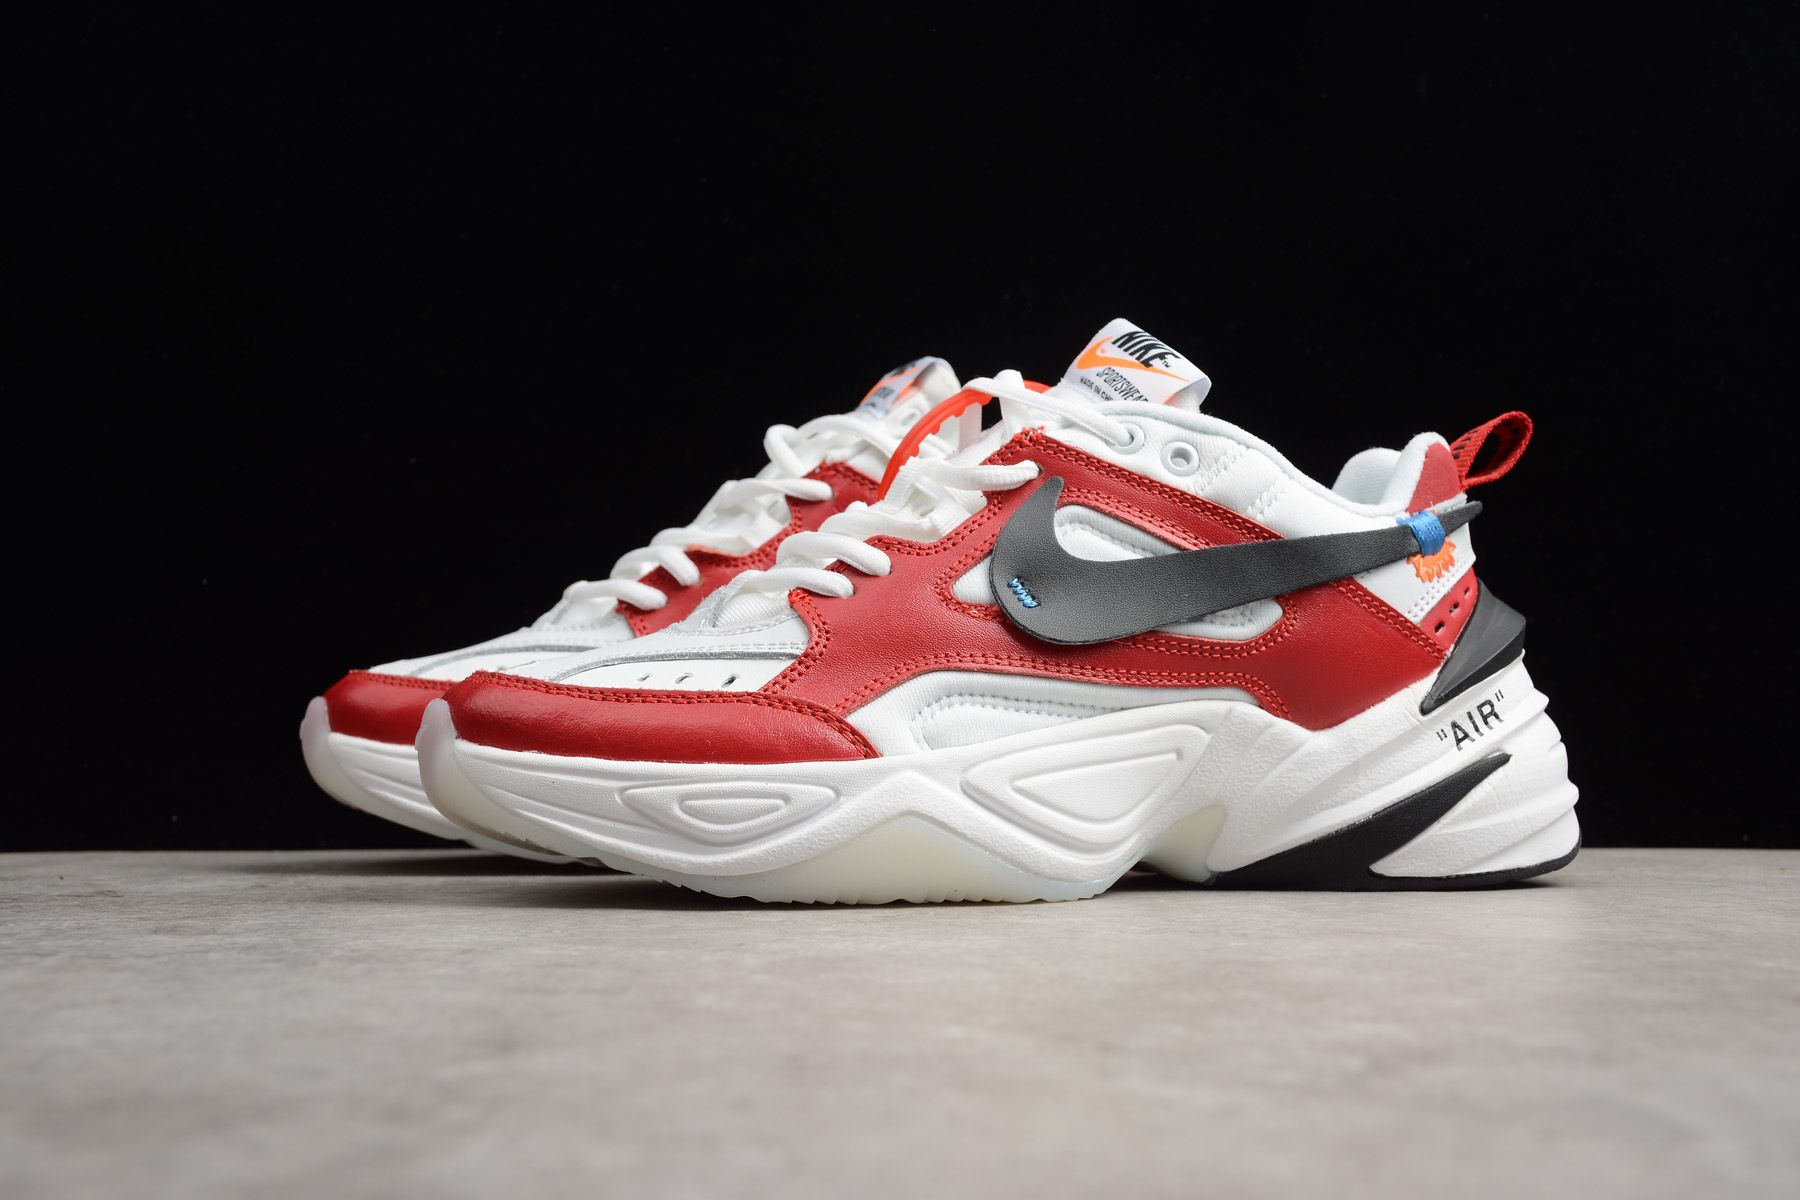 653214b07d9ce1 Discover ideas about Balenciaga Shoes. February 2019. Buy Off-White x Nike  Tekno ...